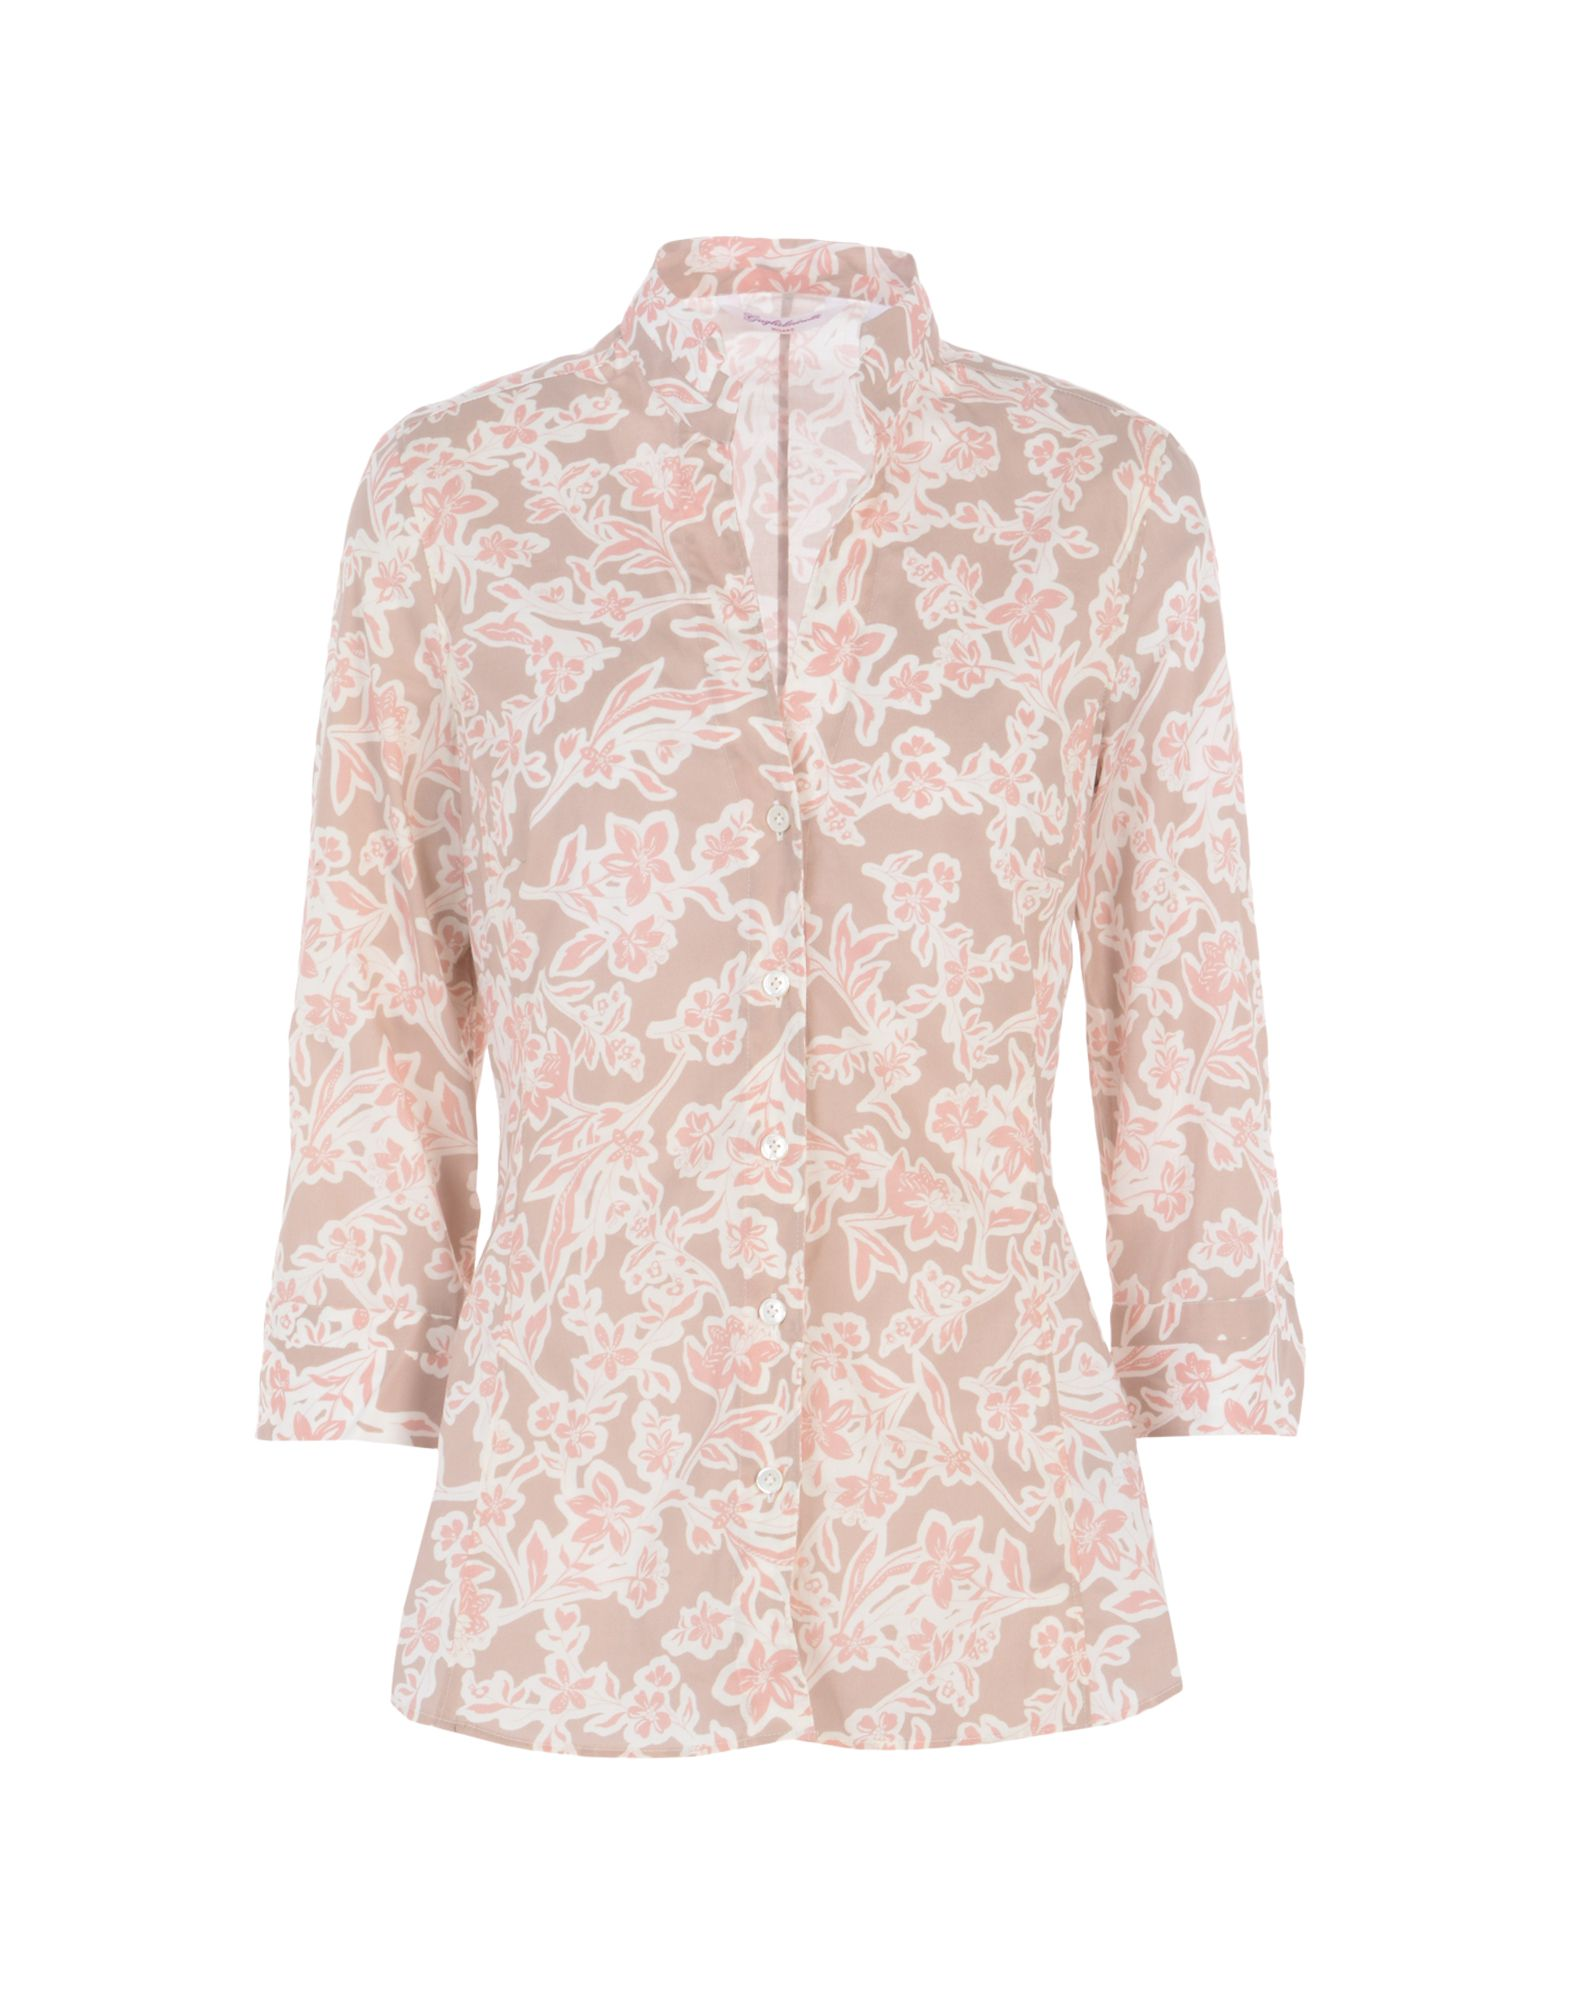 GUGLIELMINOTTI Floral Shirts & Blouses in Pink